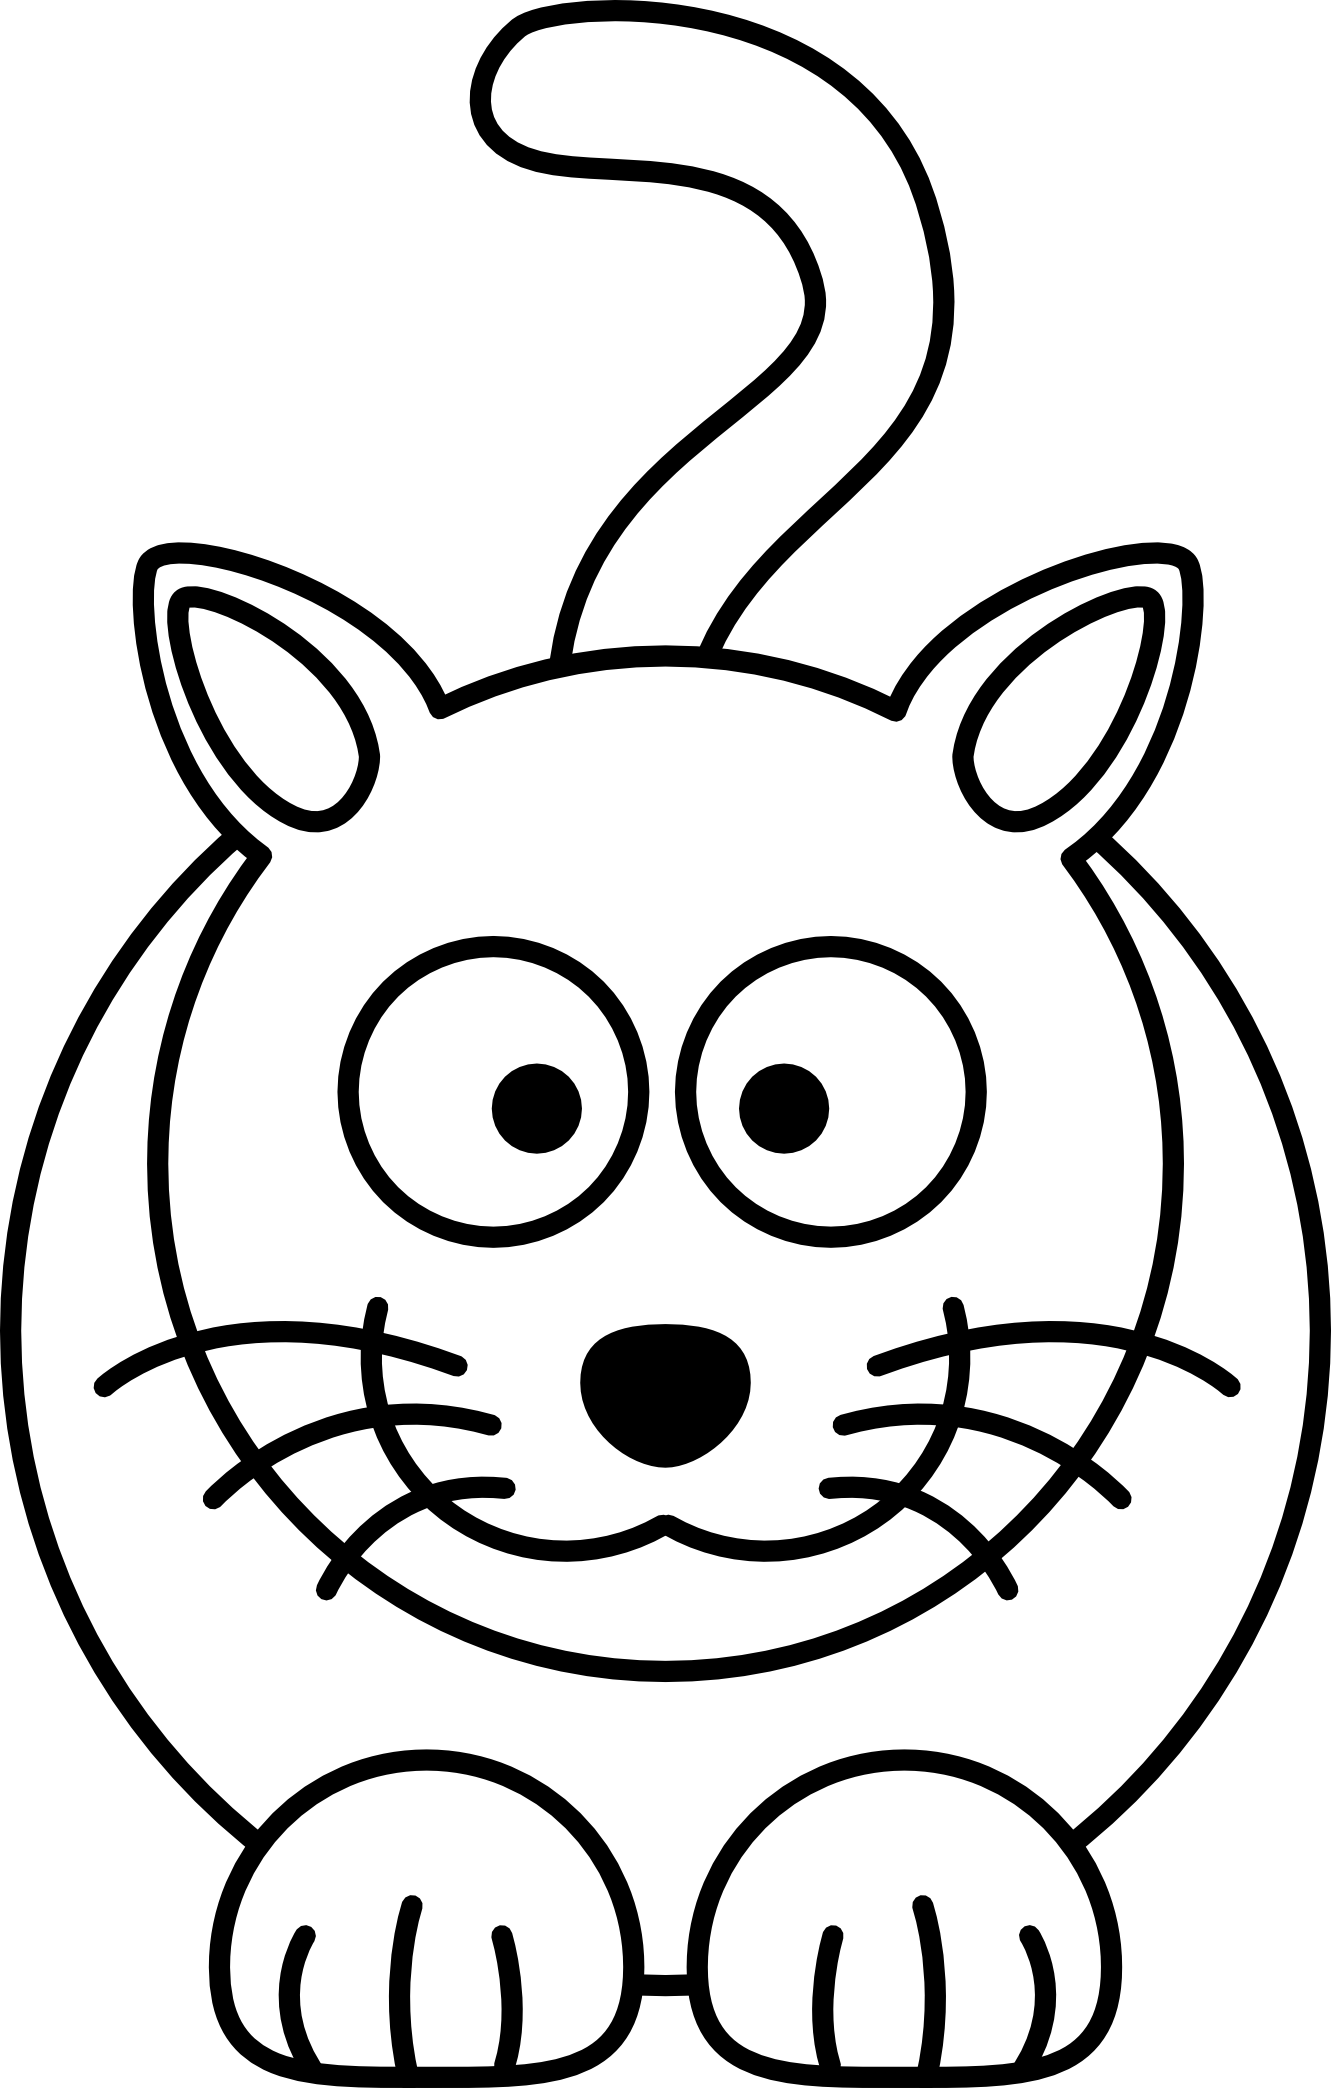 coloring image of cat adorable cat coloring pages learning printable of cat coloring image